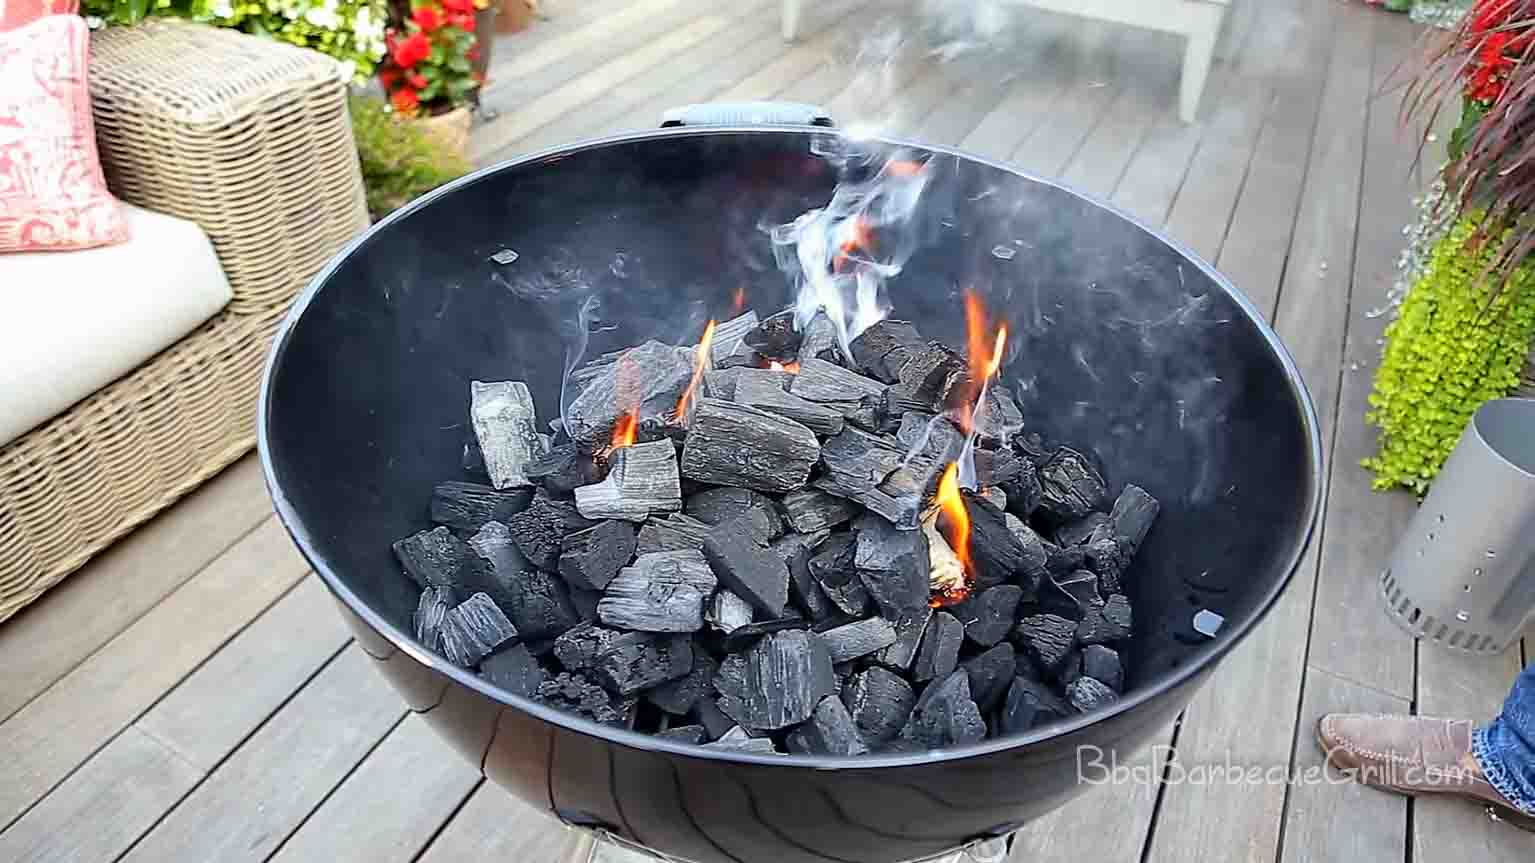 Best tailgate charcoal grill